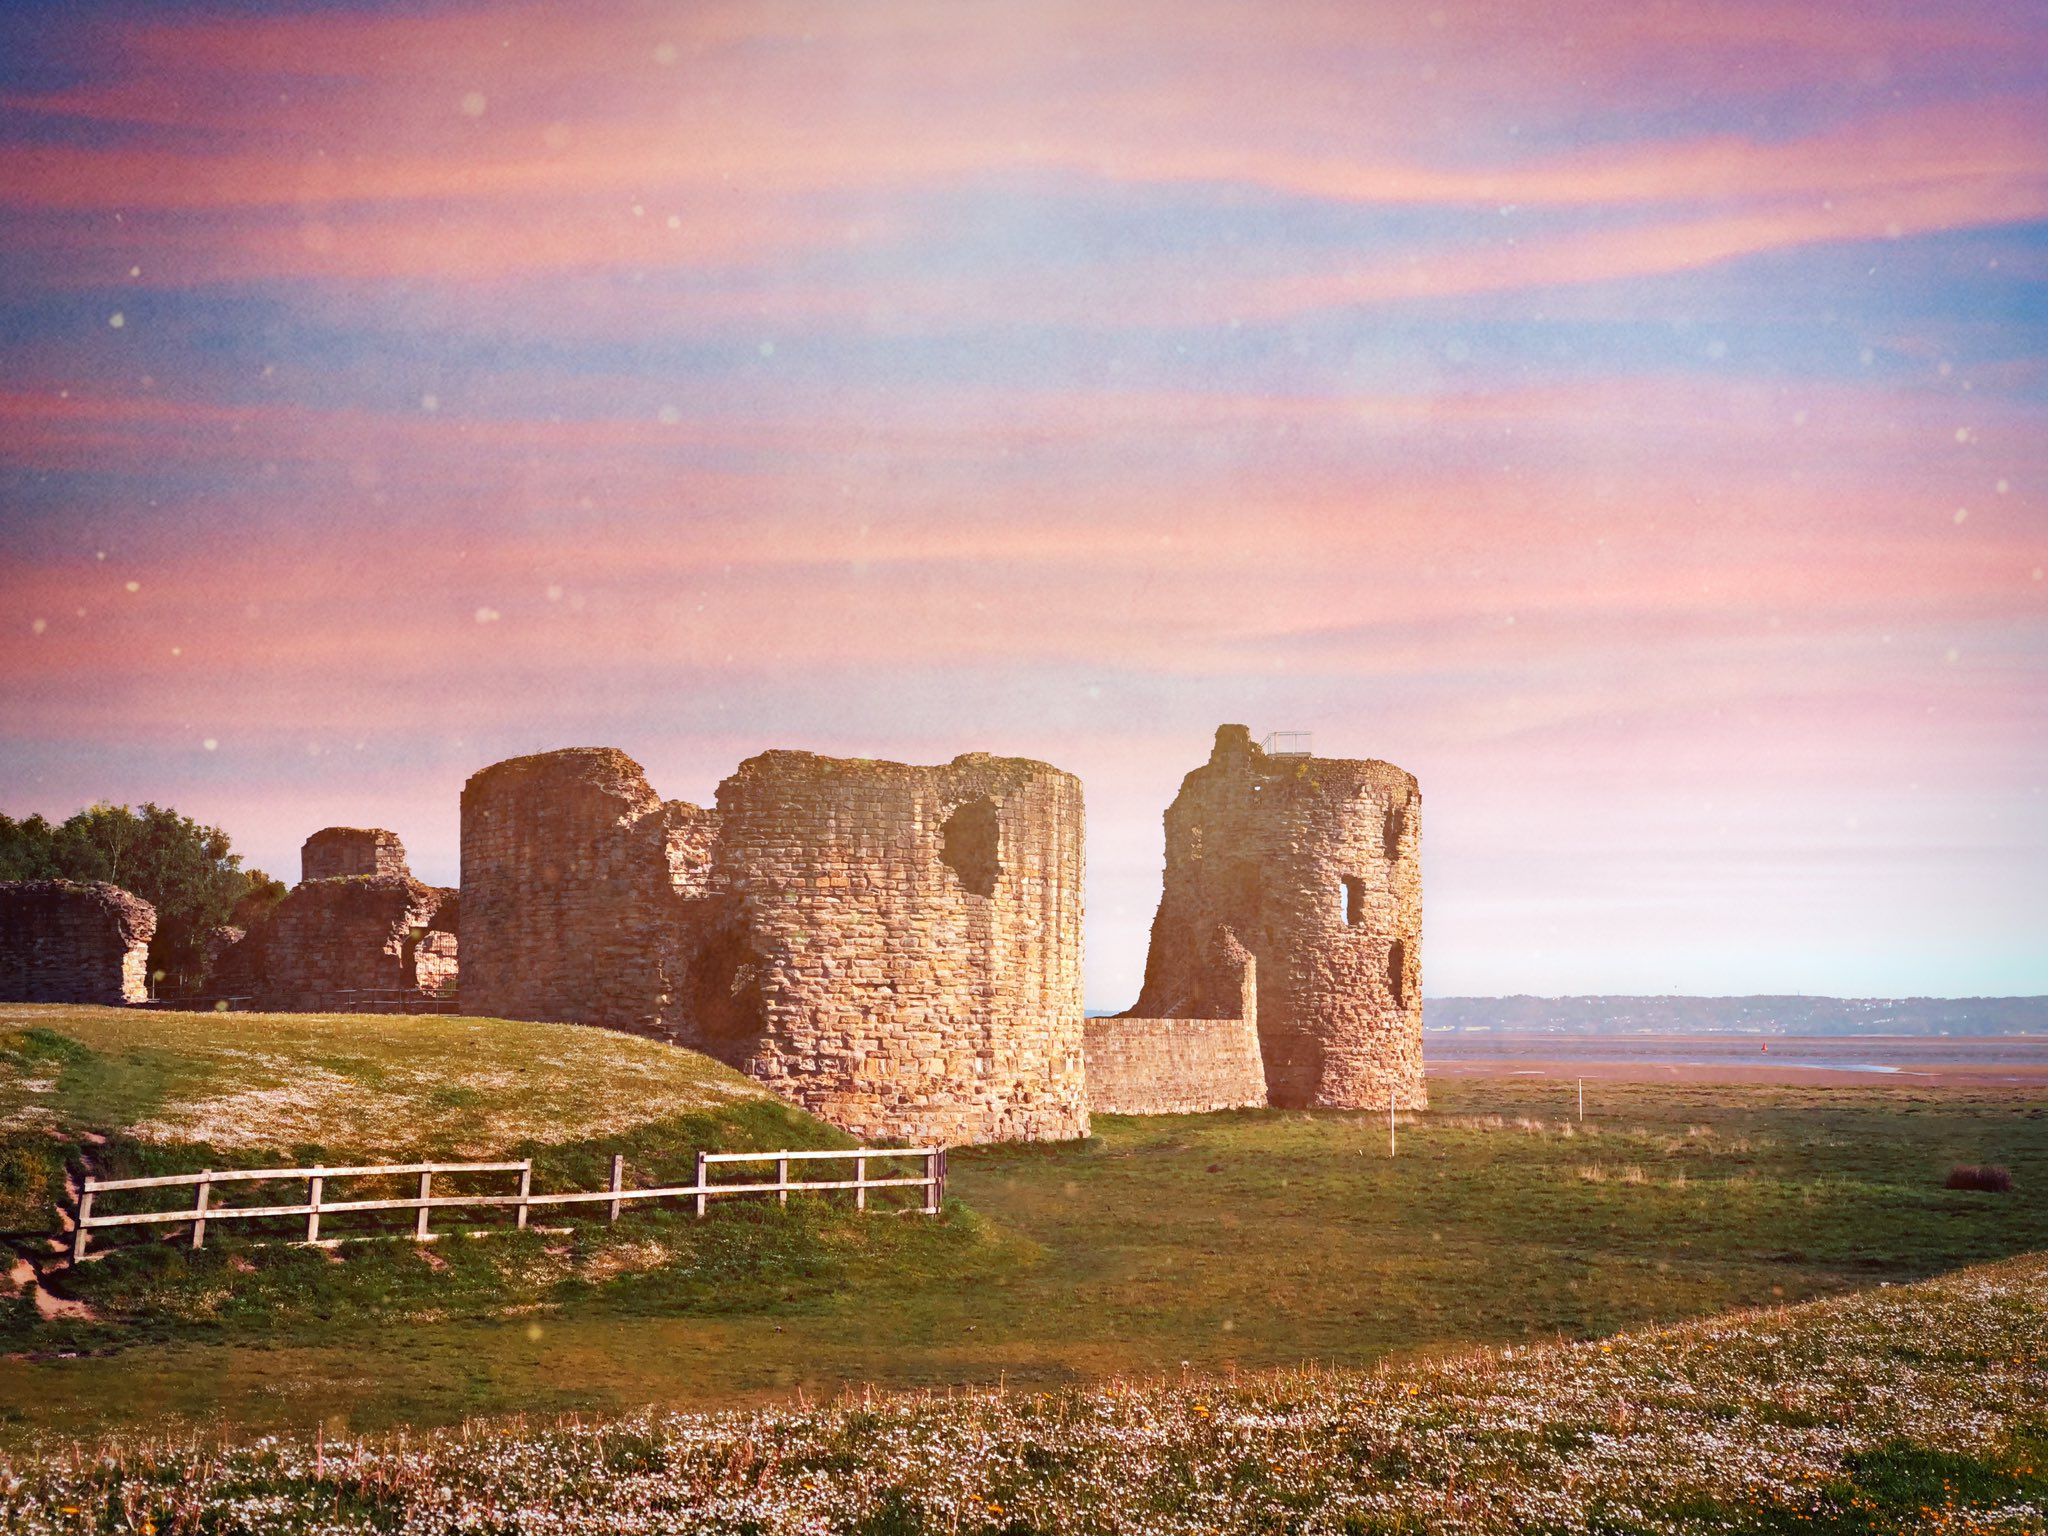 Flint Castle, this morning https://t.co/ZtqhhOy77U